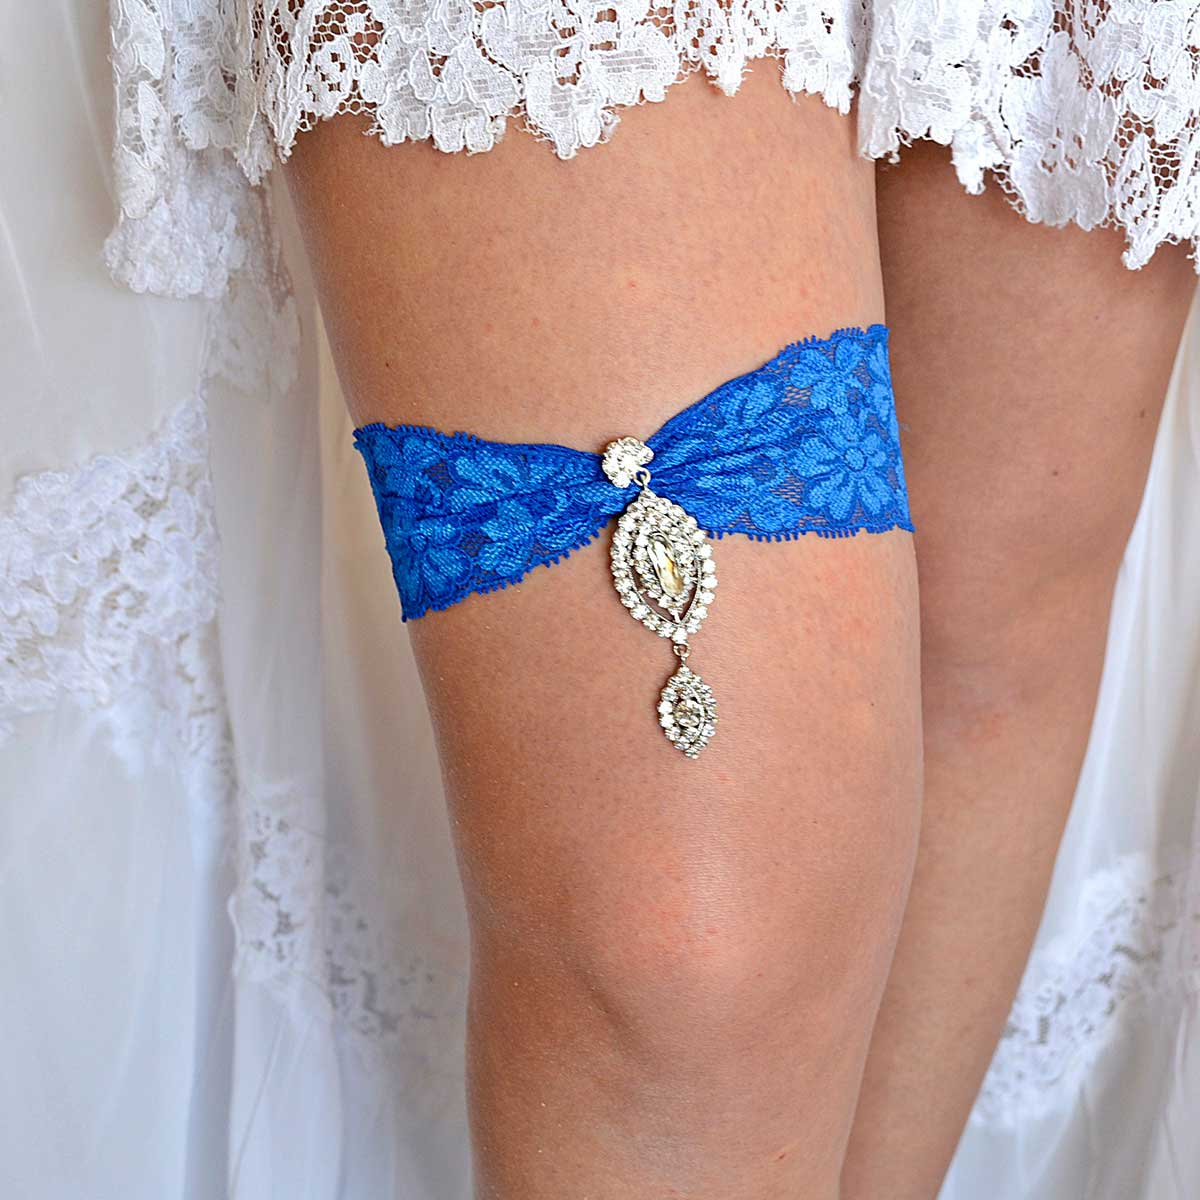 Royal Blue Wedding Garter Belt Set With Clear Rhinestone - Wedding Garter - SuzannaM Designs